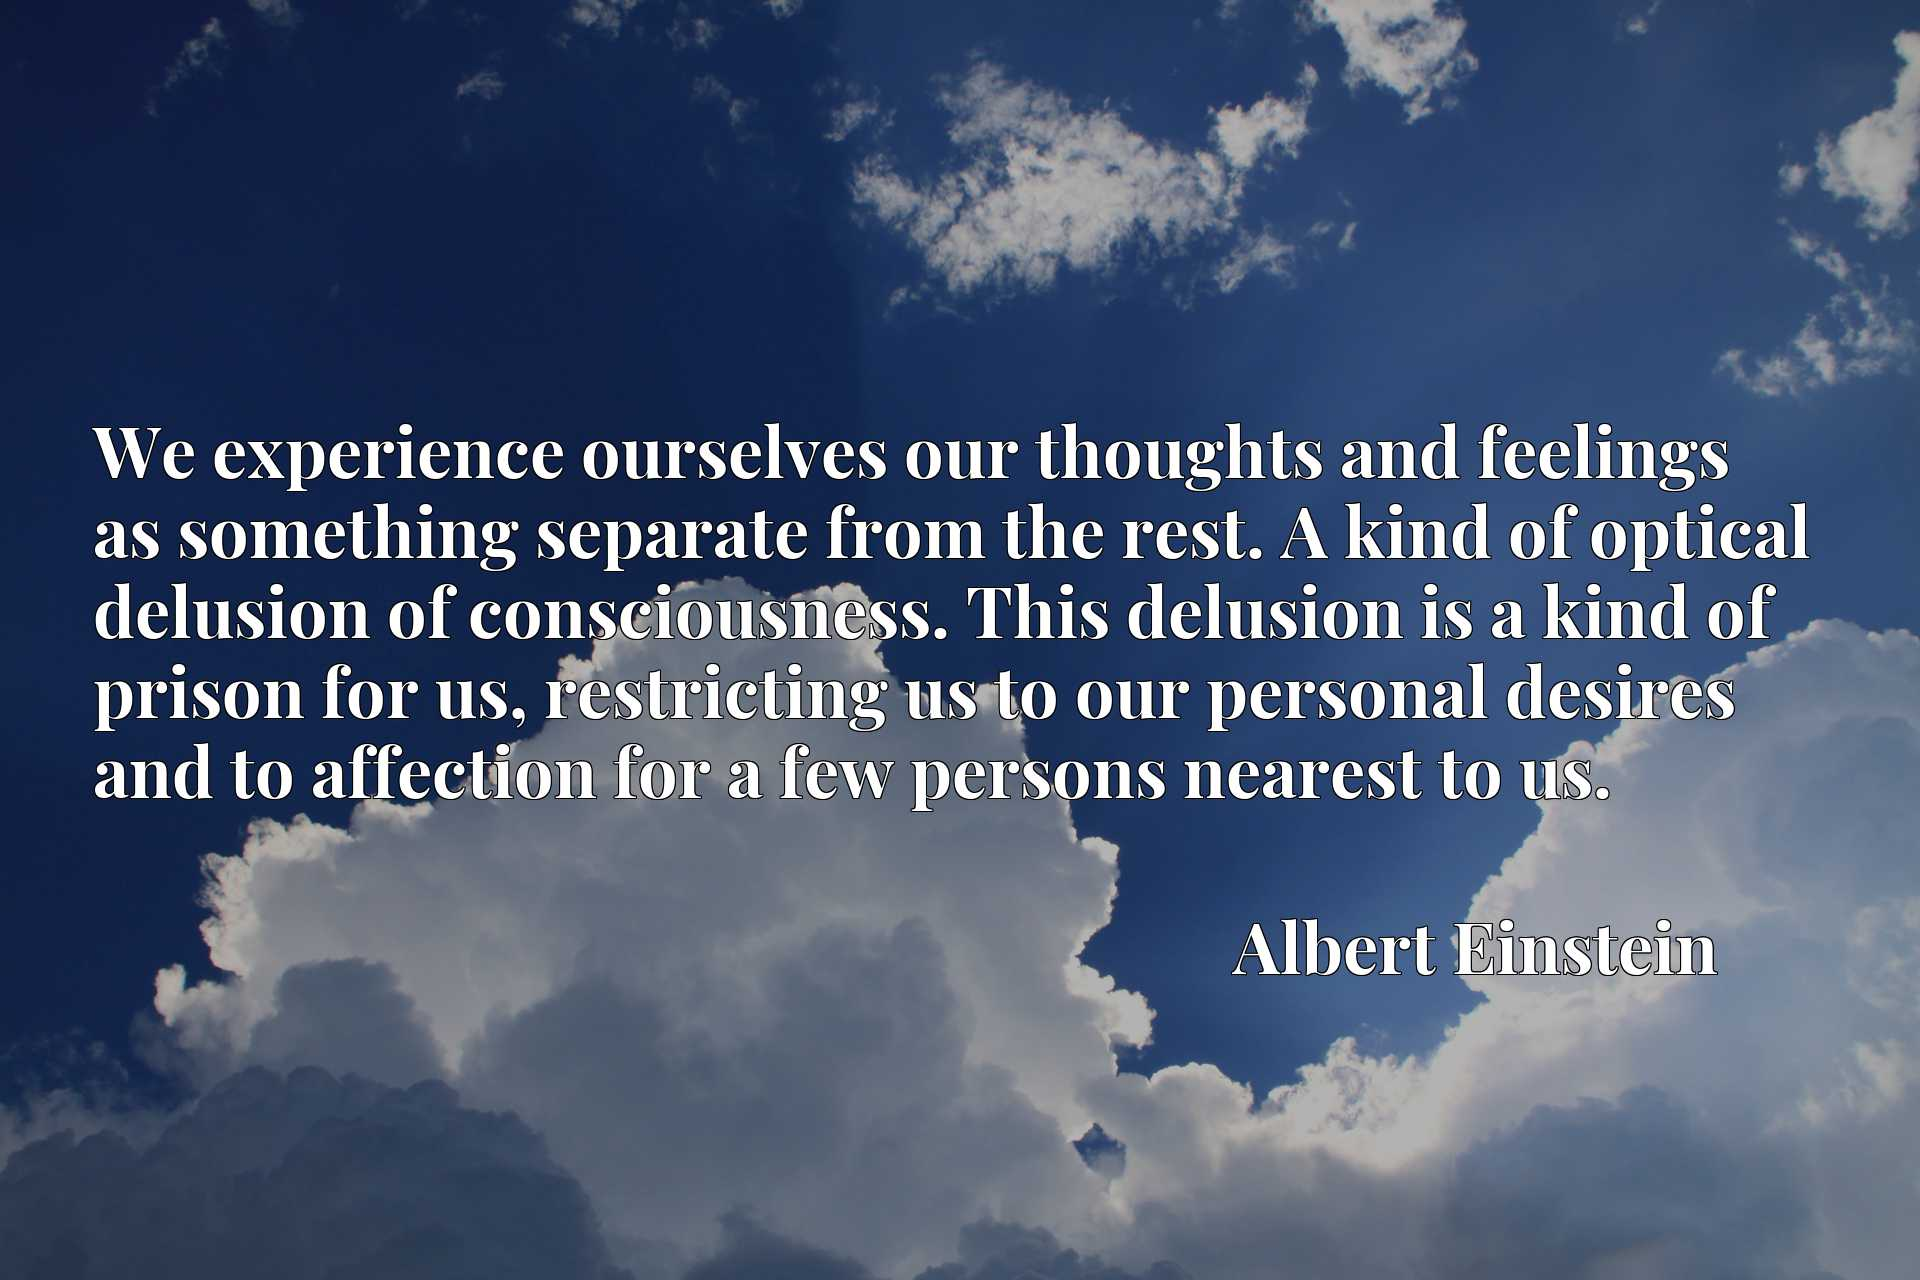 We experience ourselves our thoughts and feelings as something separate from the rest. A kind of optical delusion of consciousness. This delusion is a kind of prison for us, restricting us to our personal desires and to affection for a few persons nearest to us.